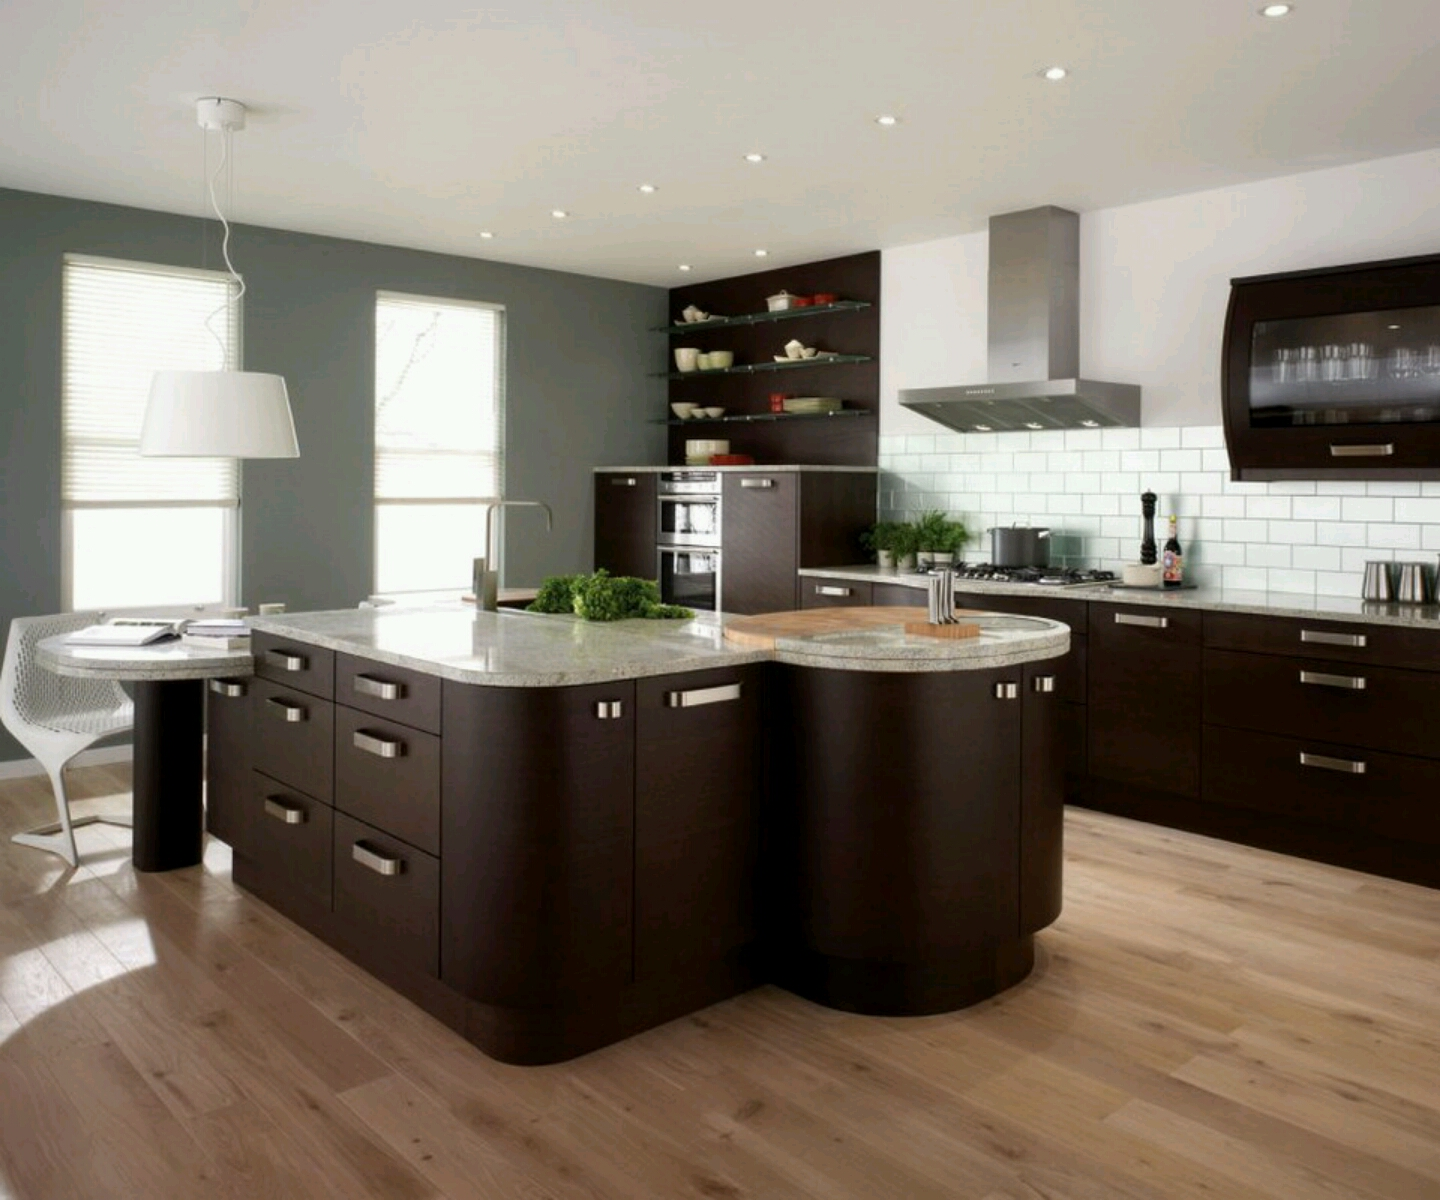 kitchen ideas contemporary of modern homes ultra modern kitchen designs ideas - Modern Design Ideas